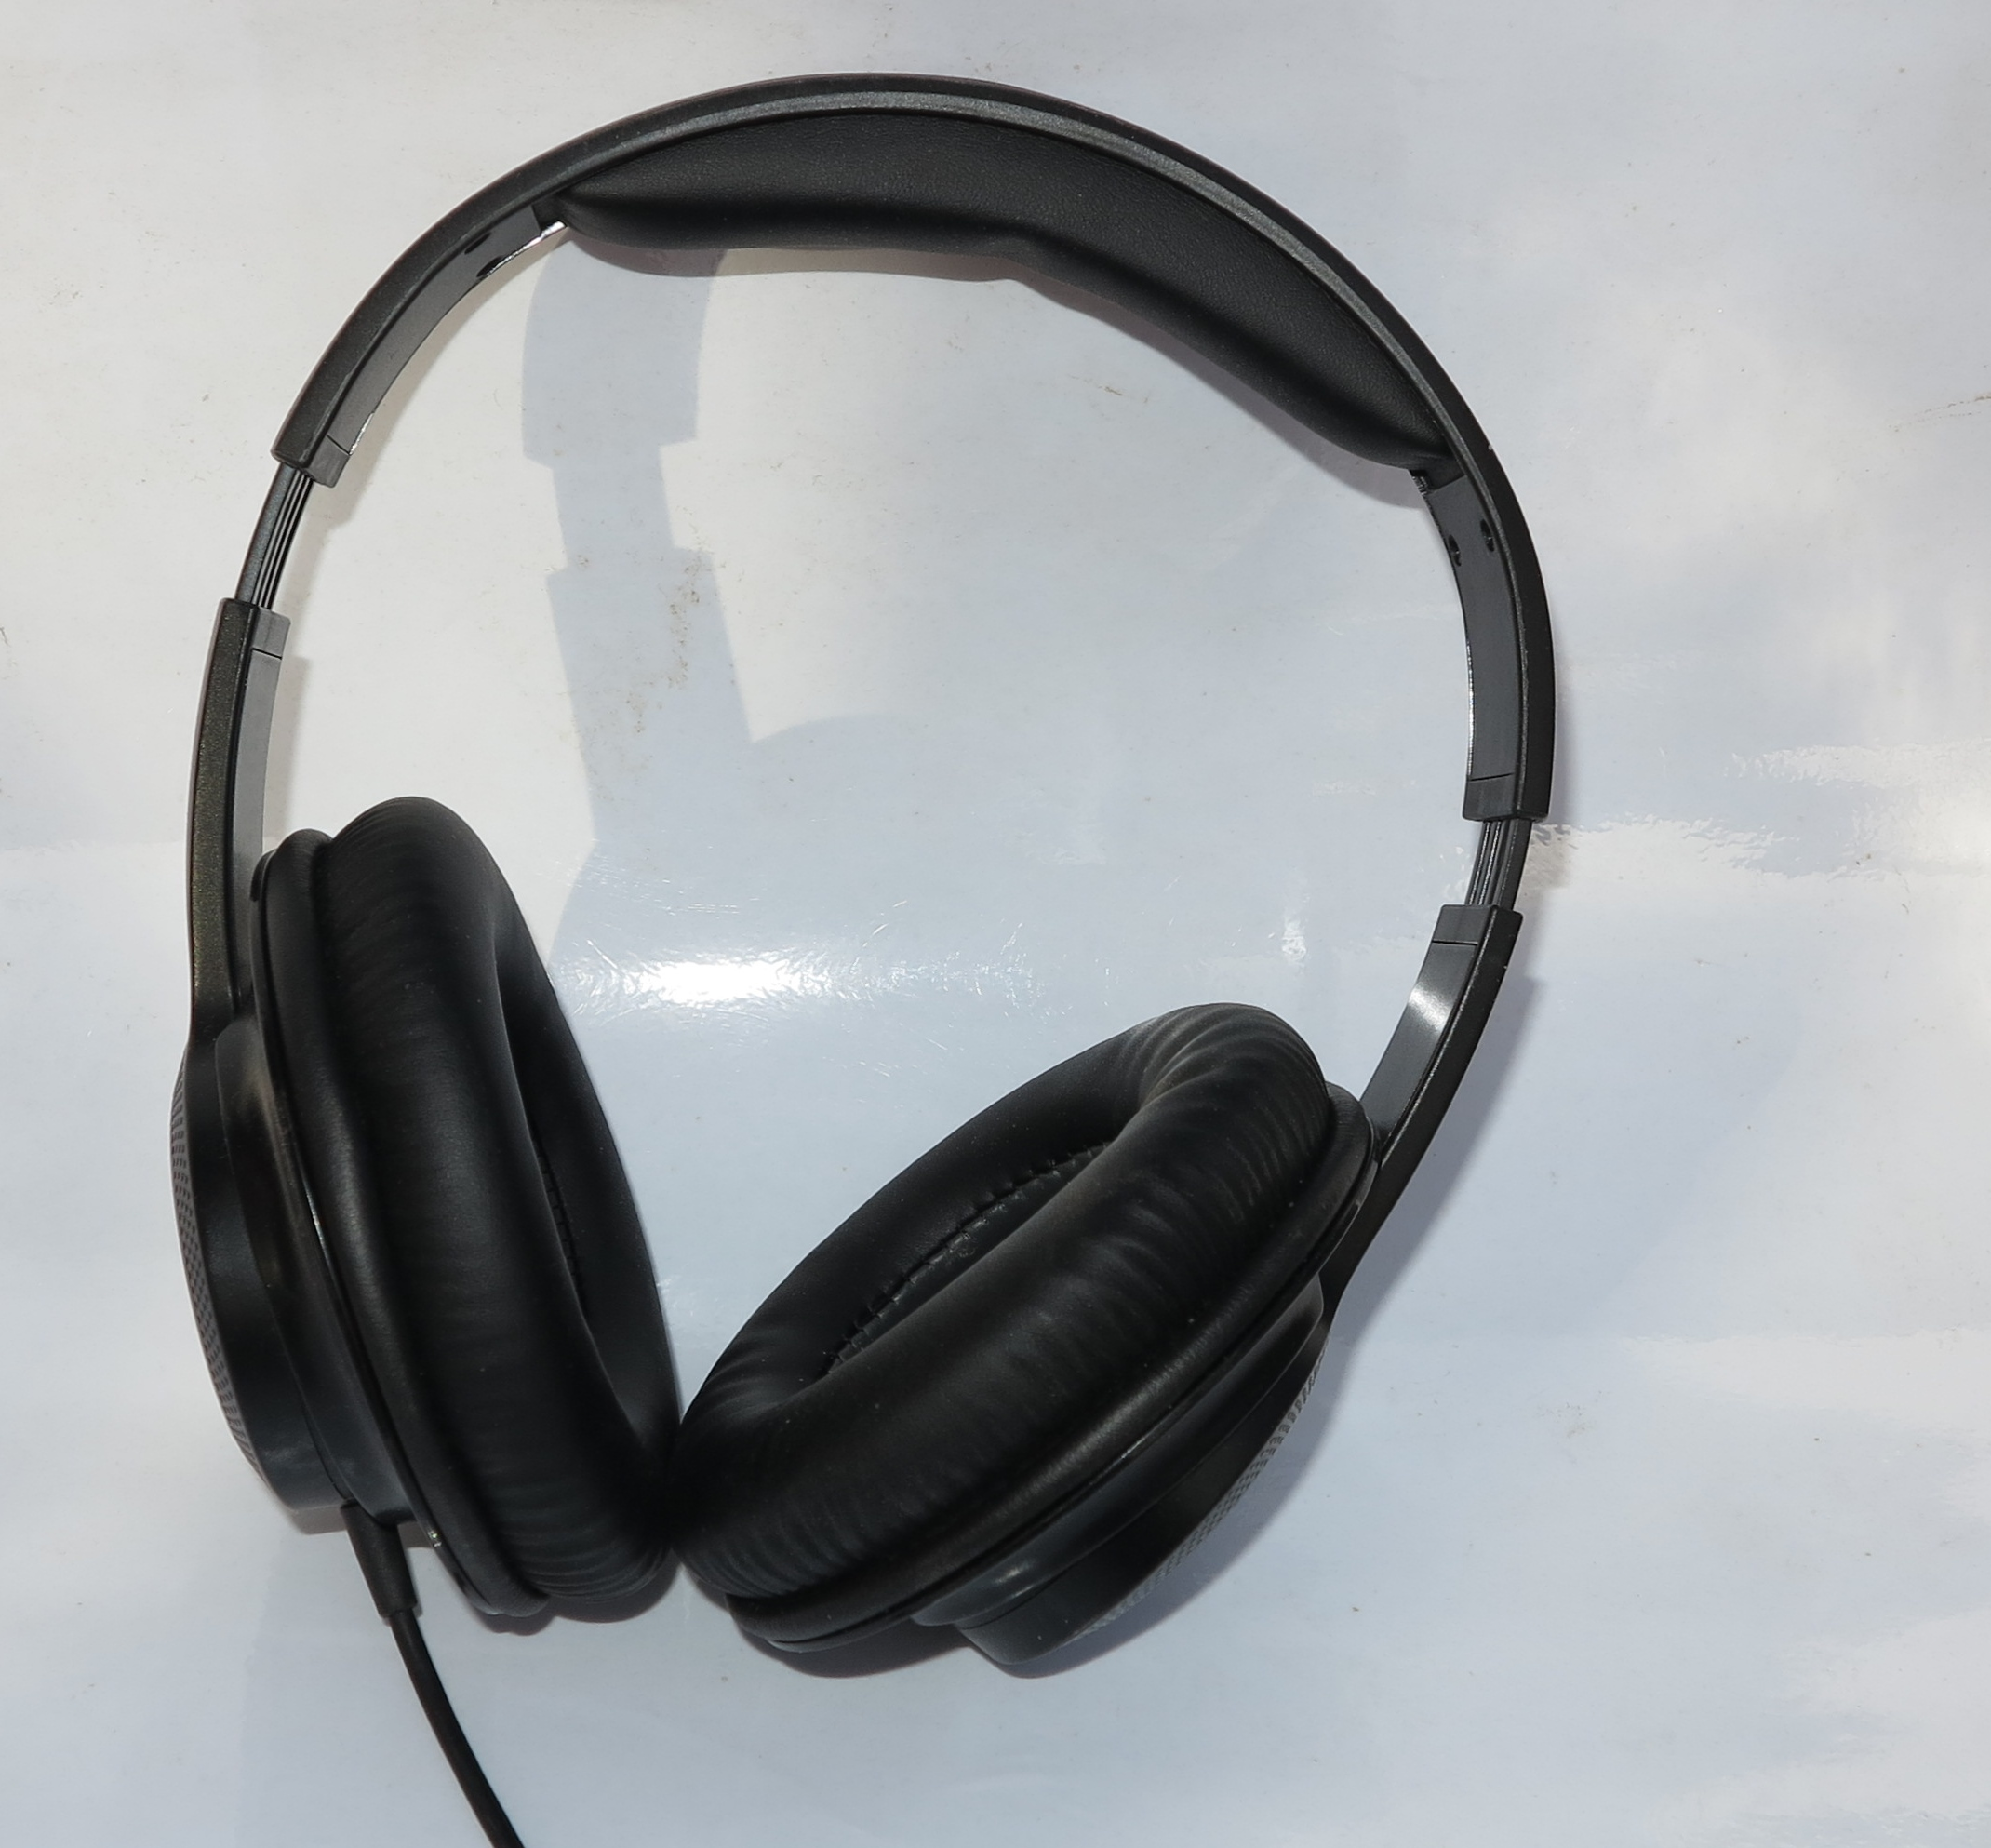 Dell A2 Performance USB Headset